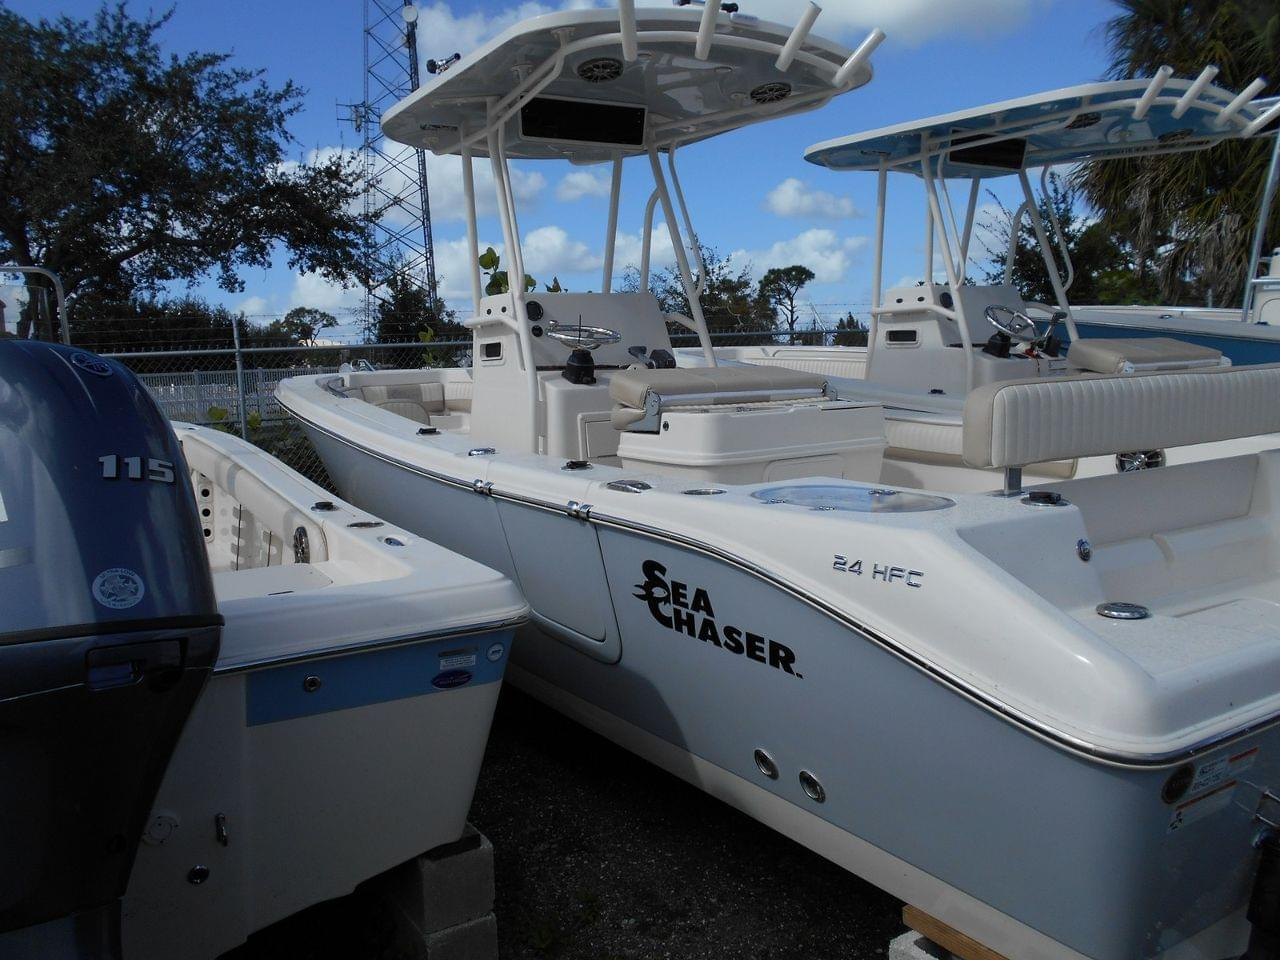 Sea Chaser Boats For Sale